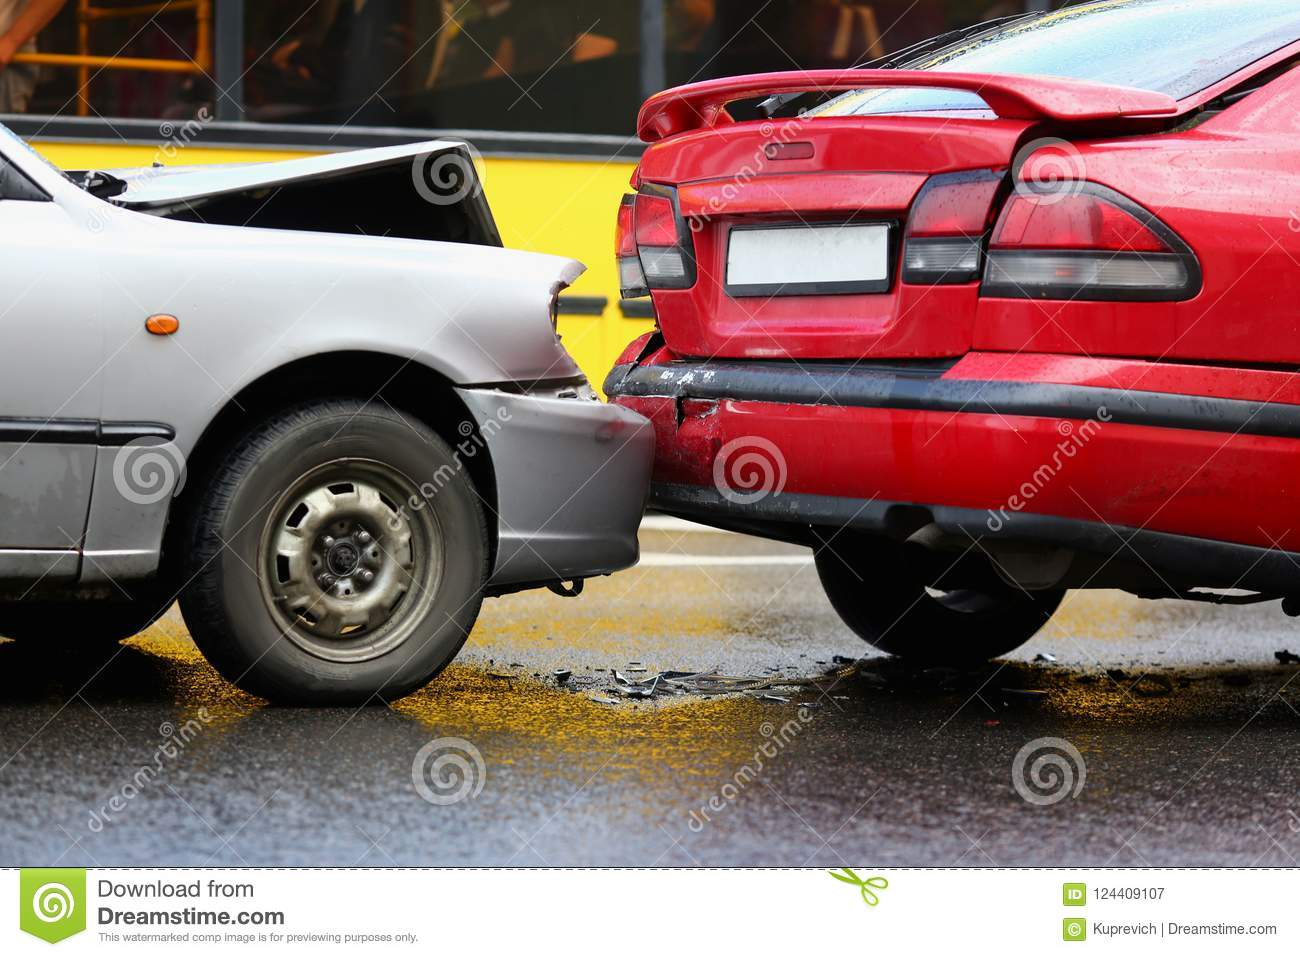 Accident of red and silver car after